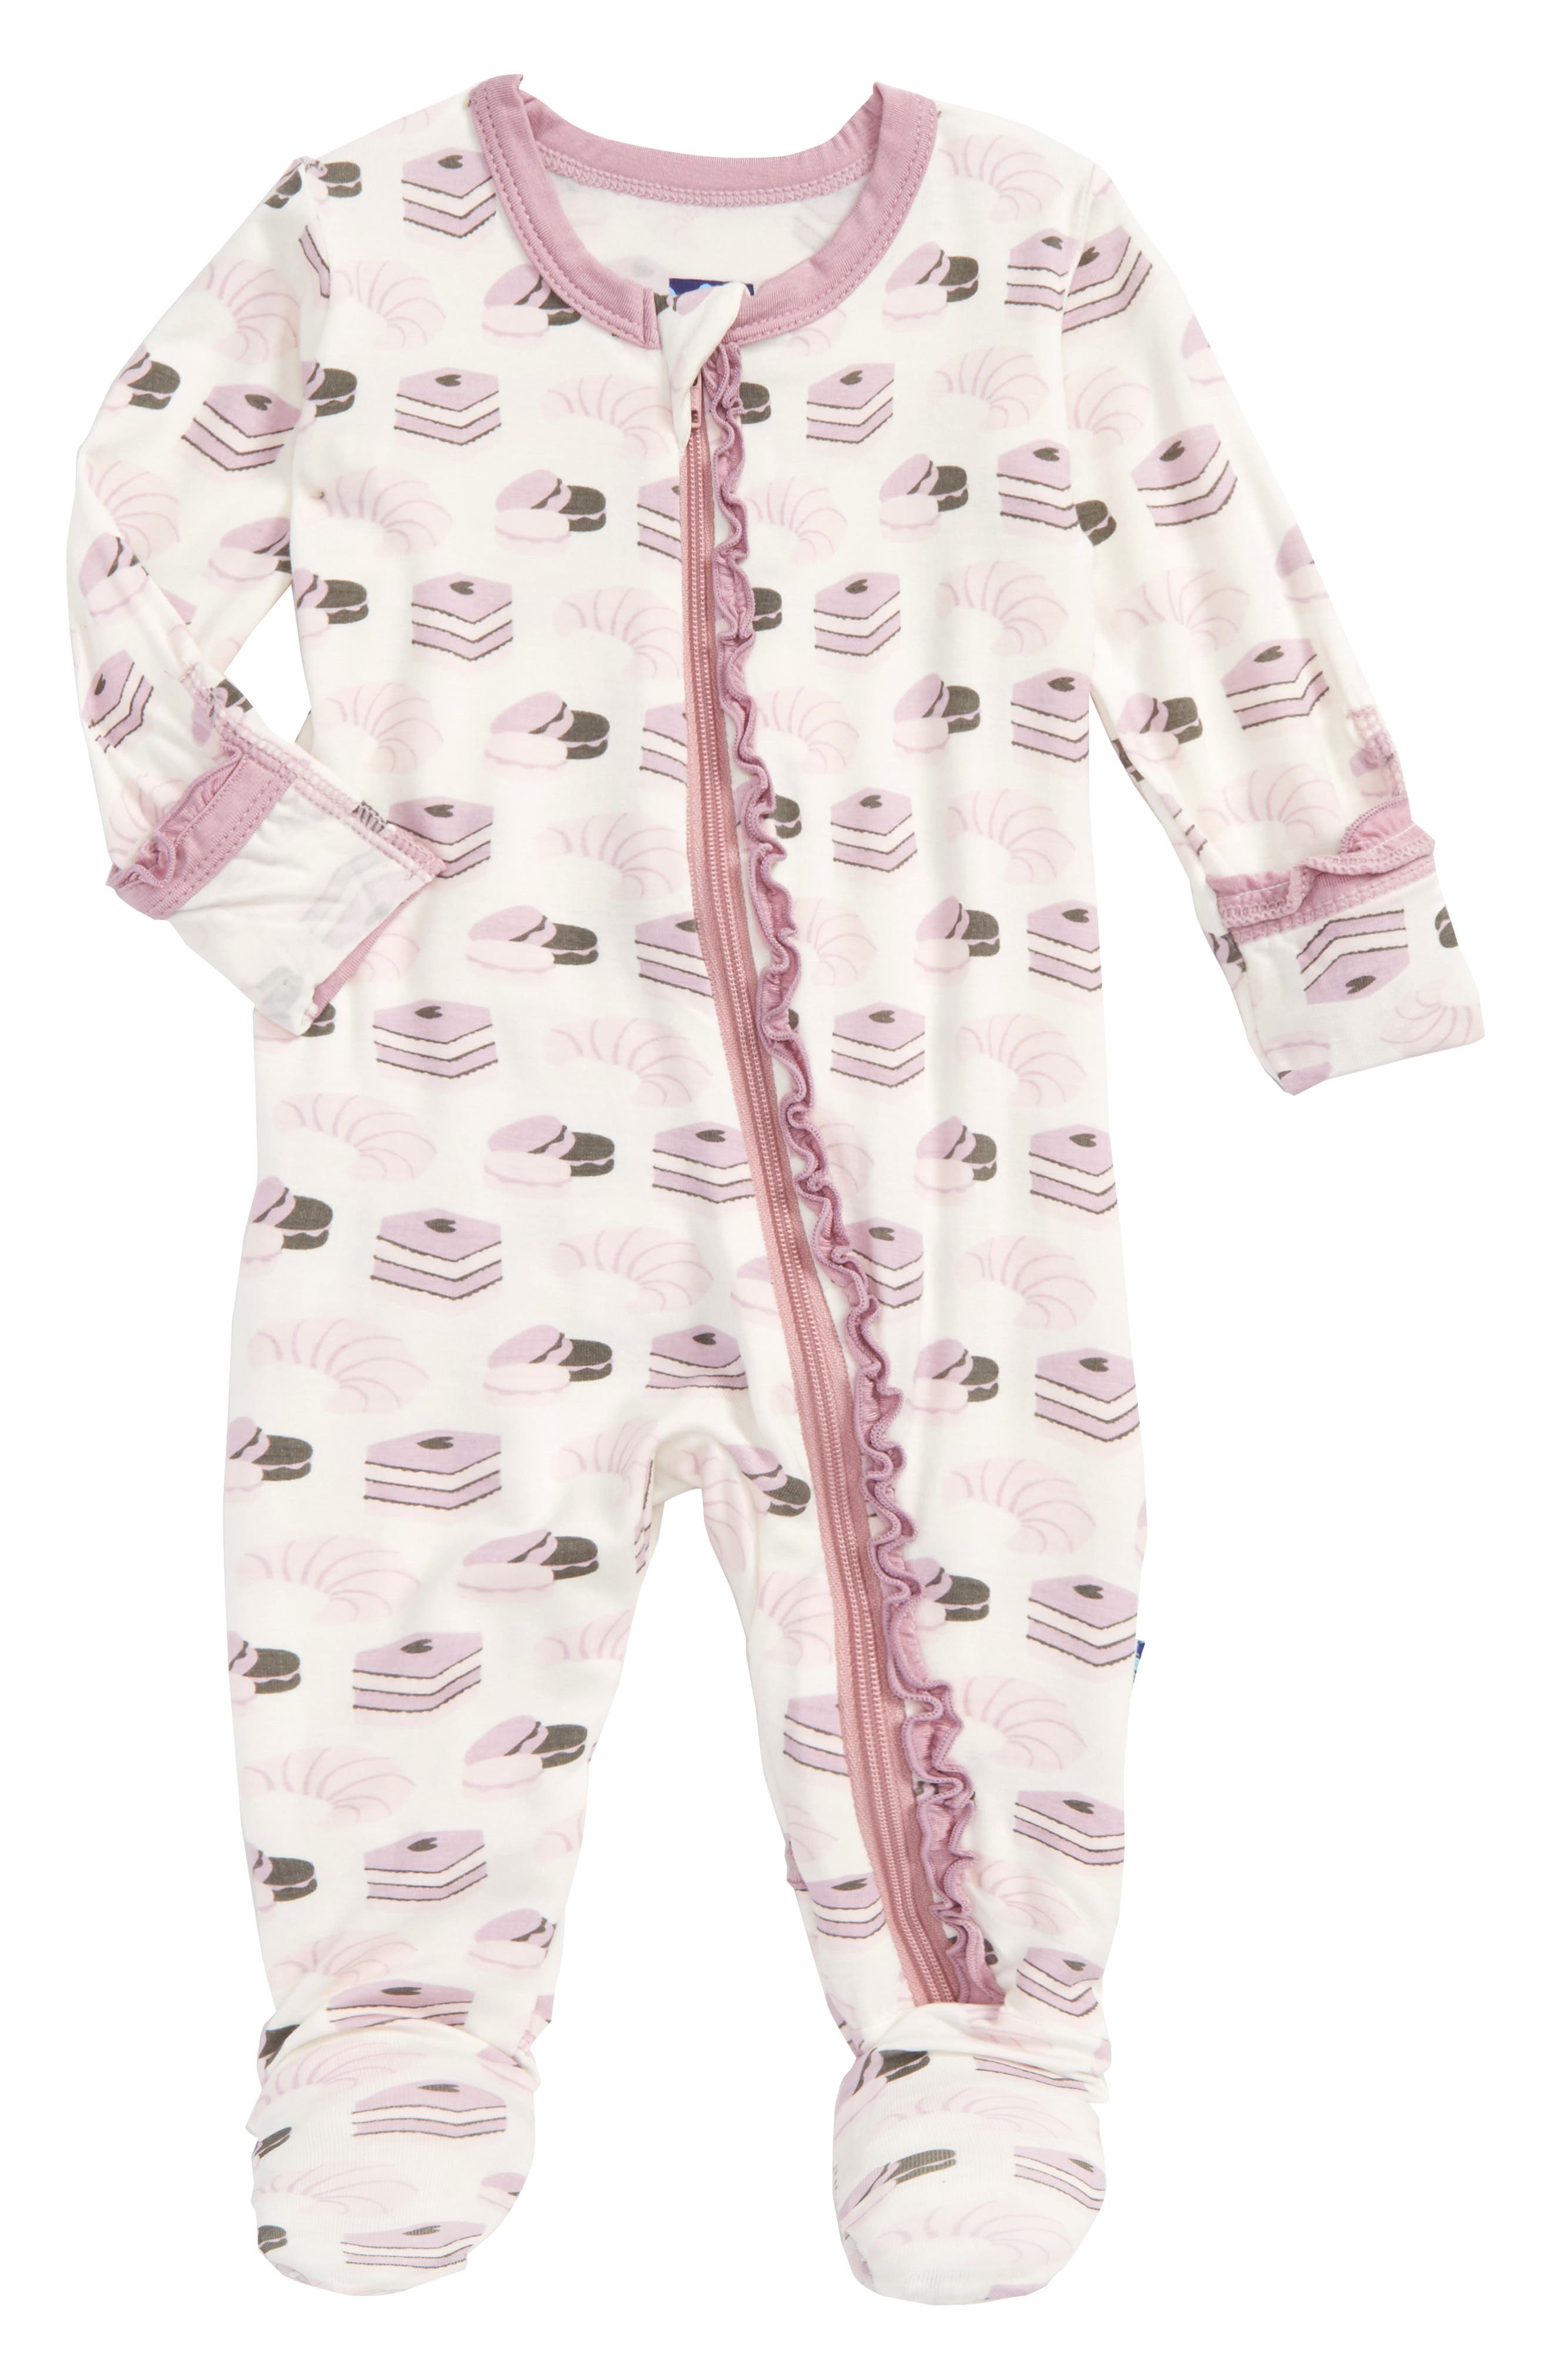 Print Fitted One-Piece Footie Pajamas,                         Main,                         color, Natural Sweet Treats